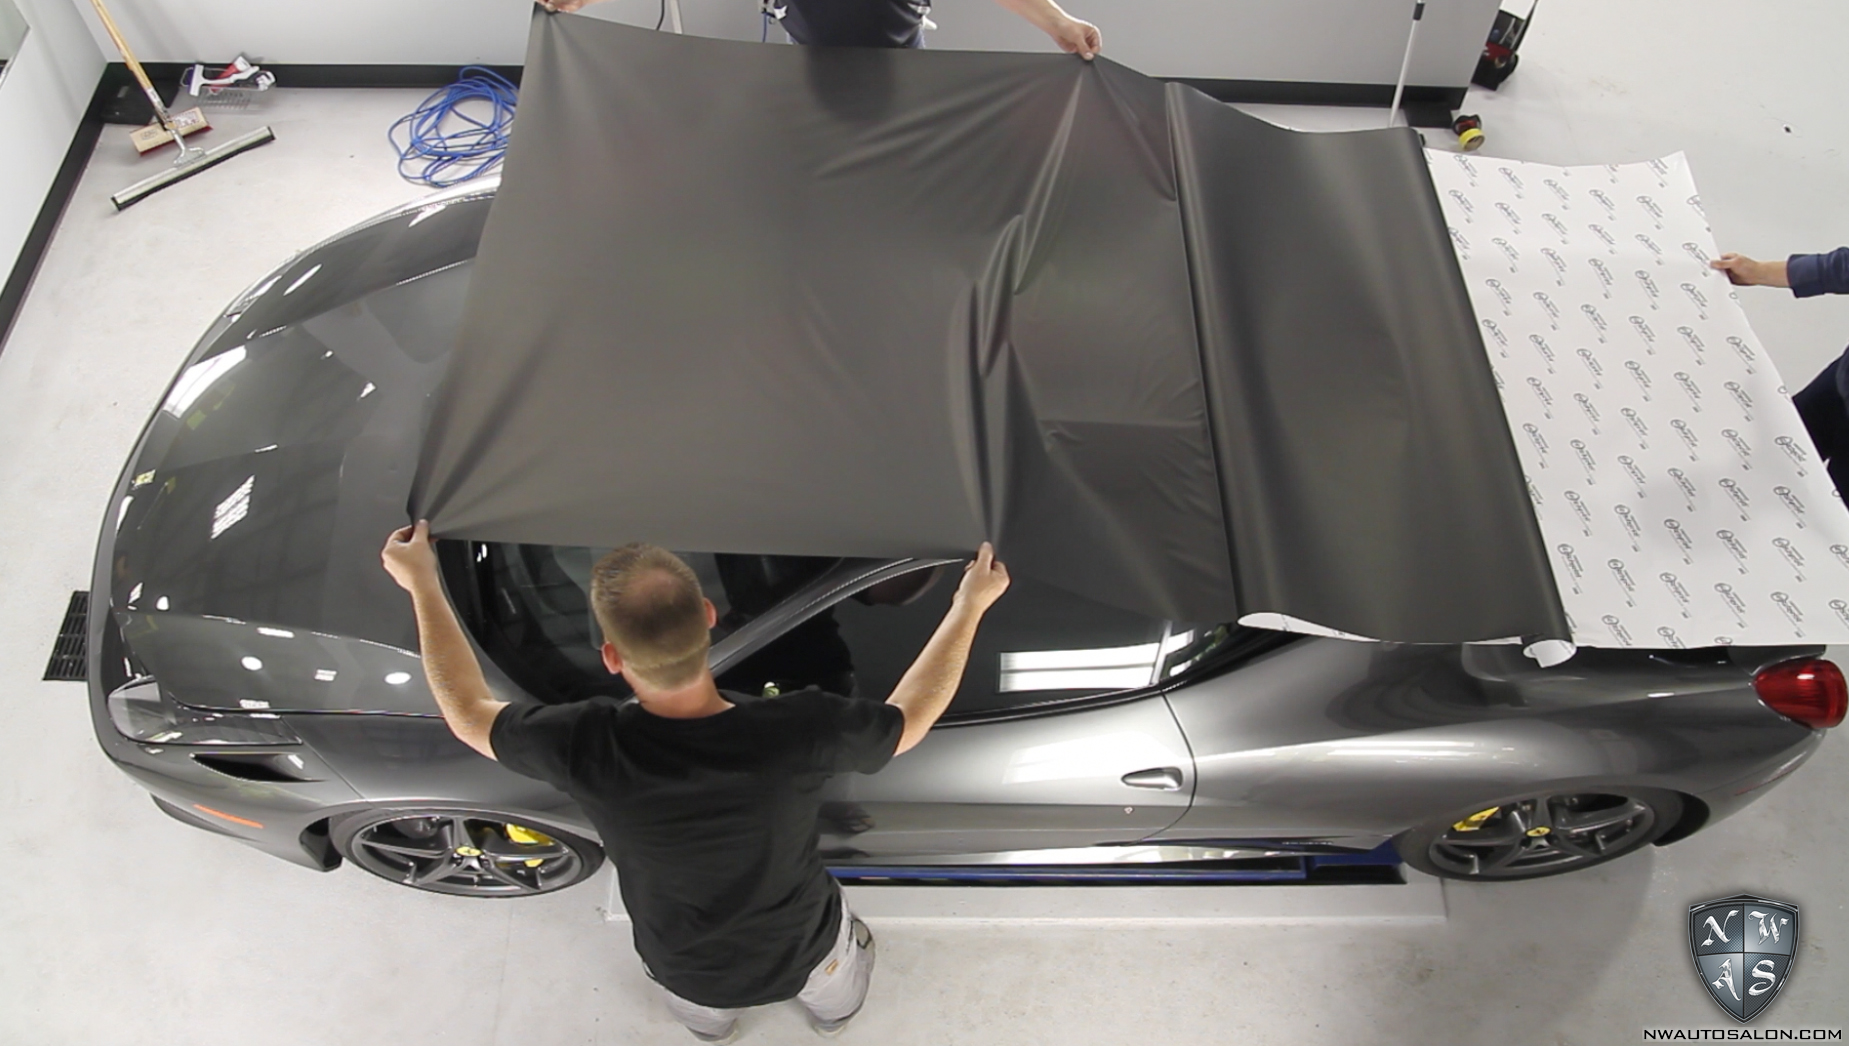 Ferrari 458 Clear Bra Paint Protection Film Video Photos Matte Black Wrap